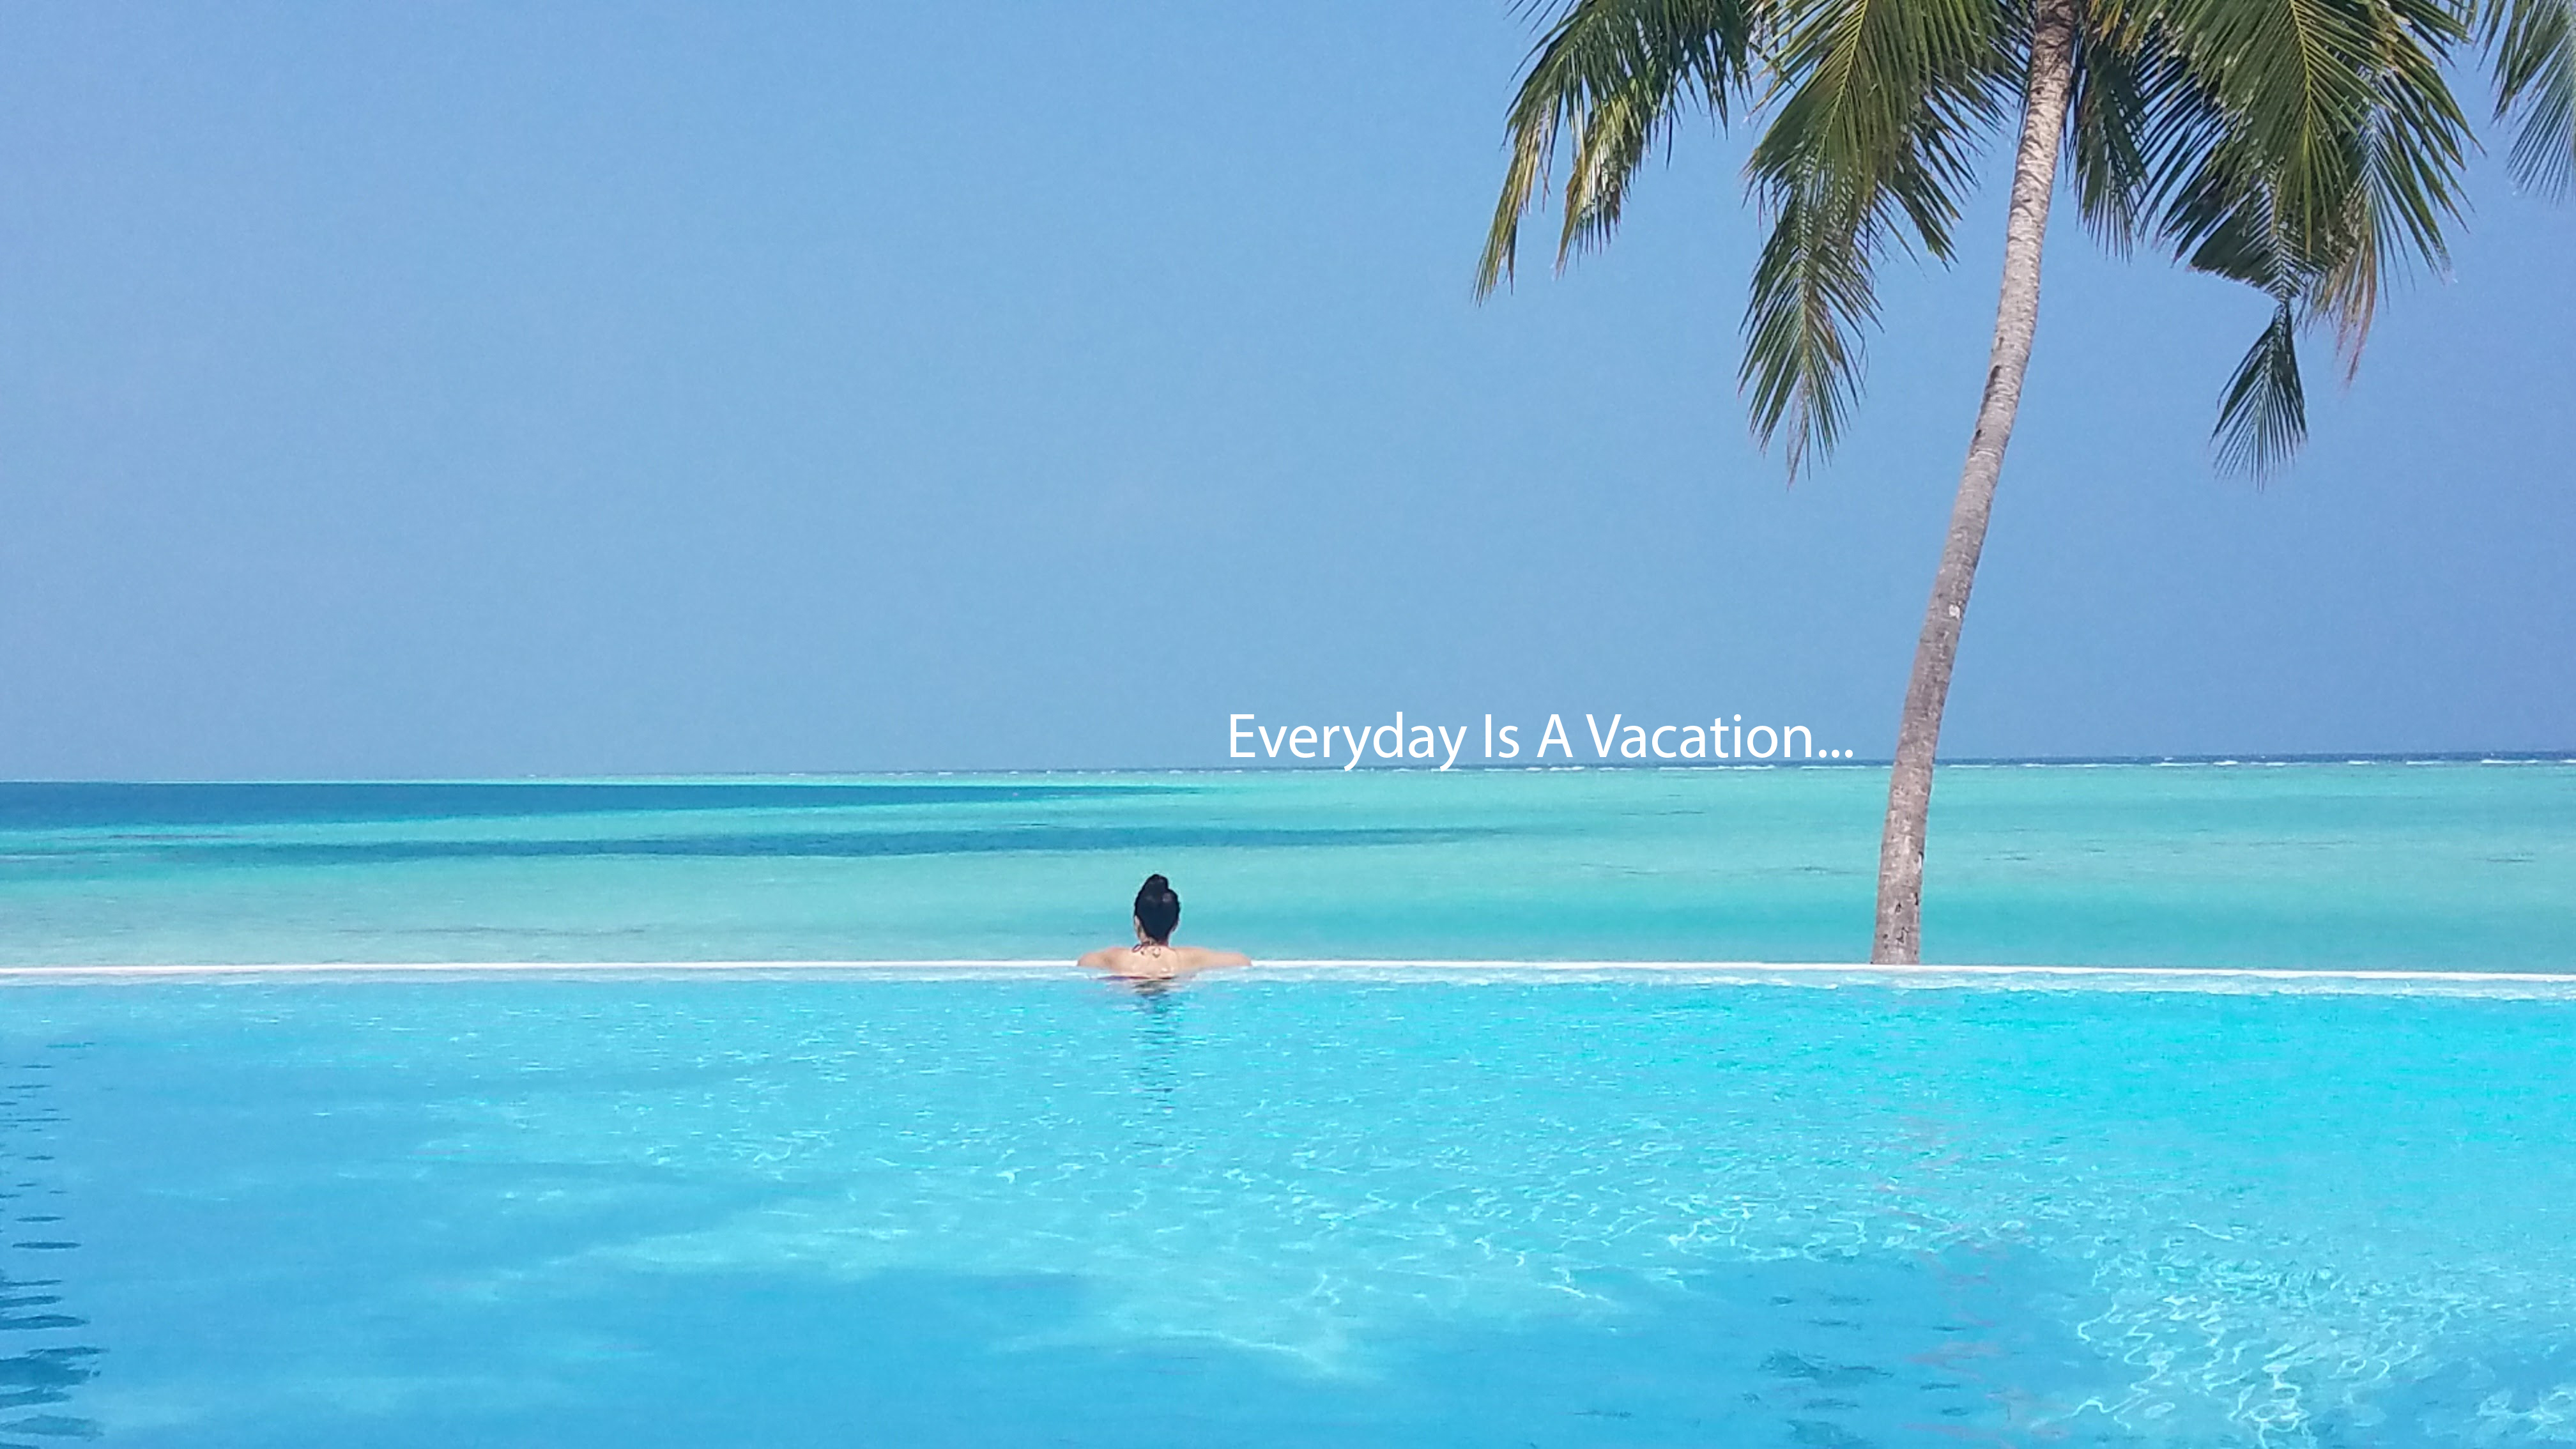 Everyday is a Vacation Home Banner